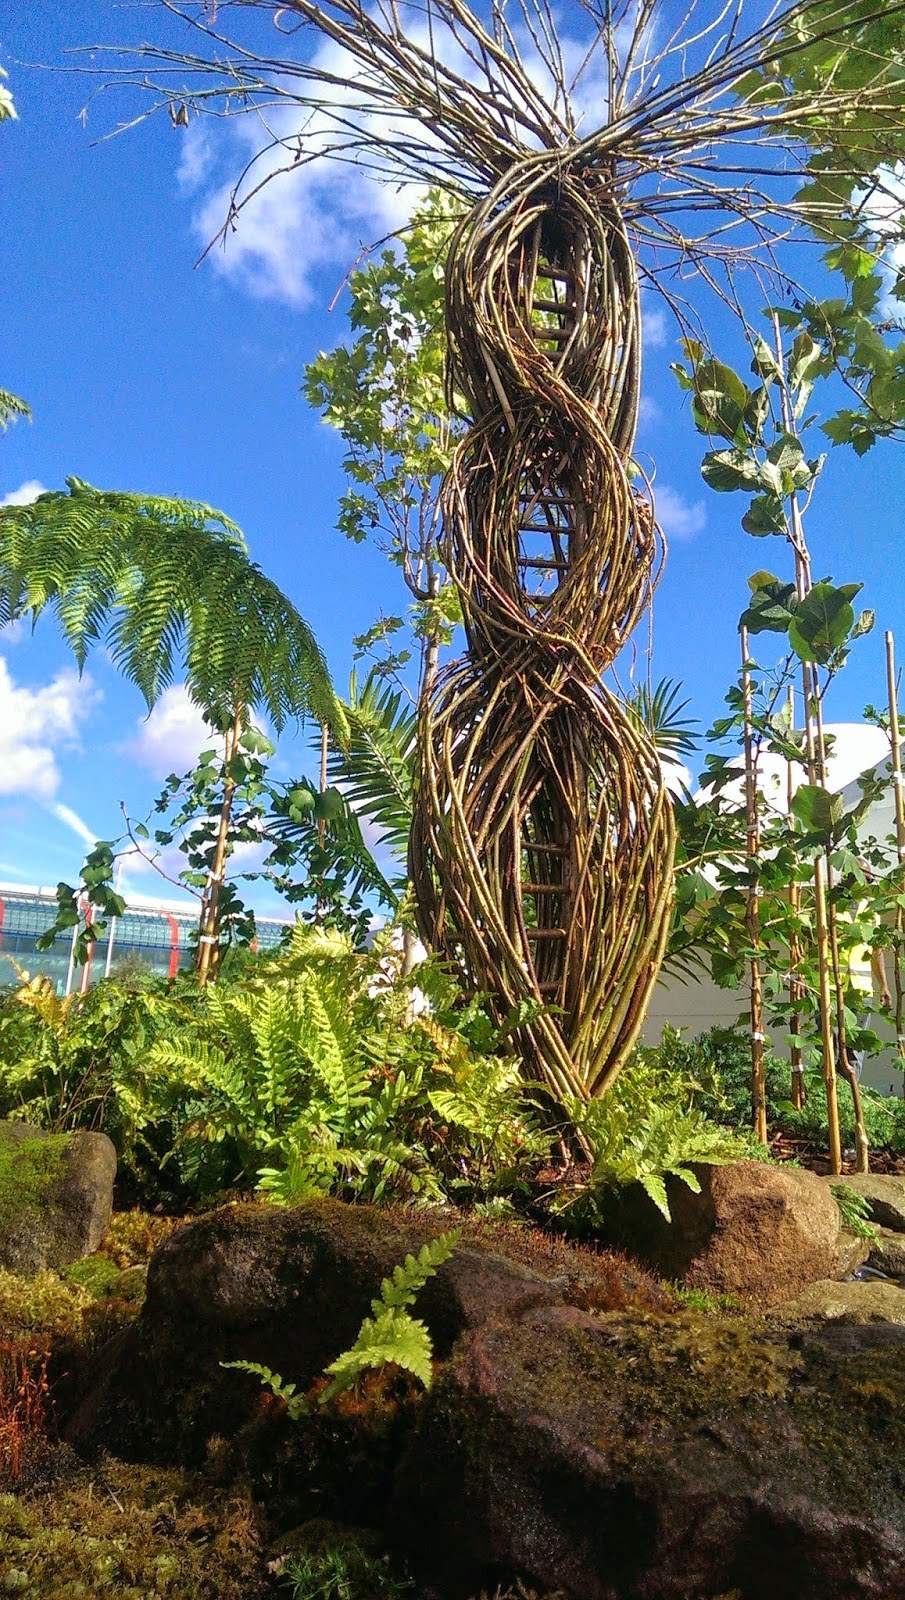 My sculpture for the birmingham botanical gardens